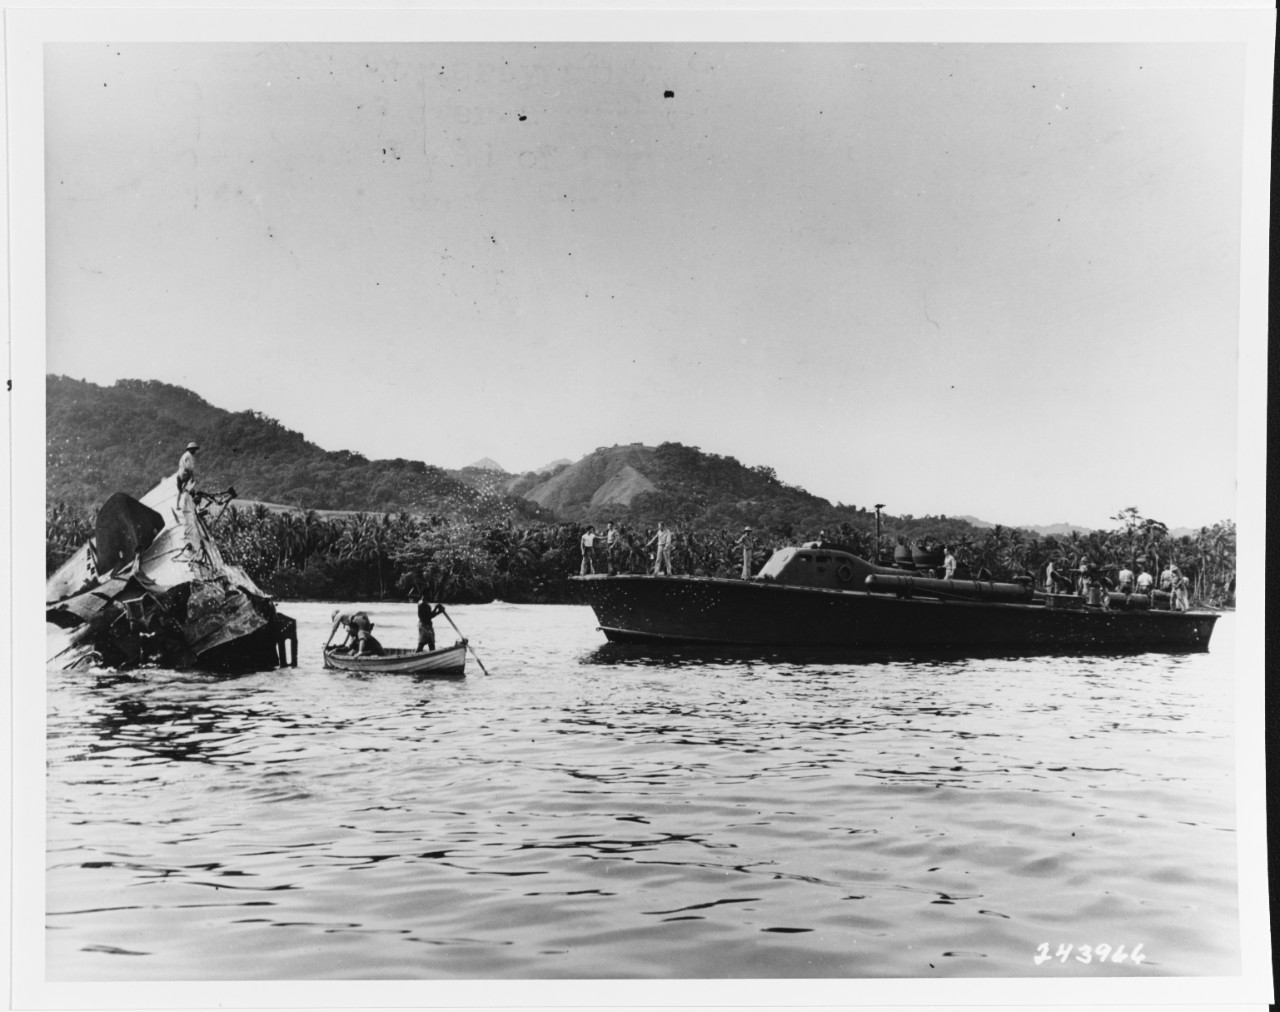 I-1 (Japanese SS, 1924) is examined by Army Intelligence personnel as USS PT-65 stands by, February 11, 1943